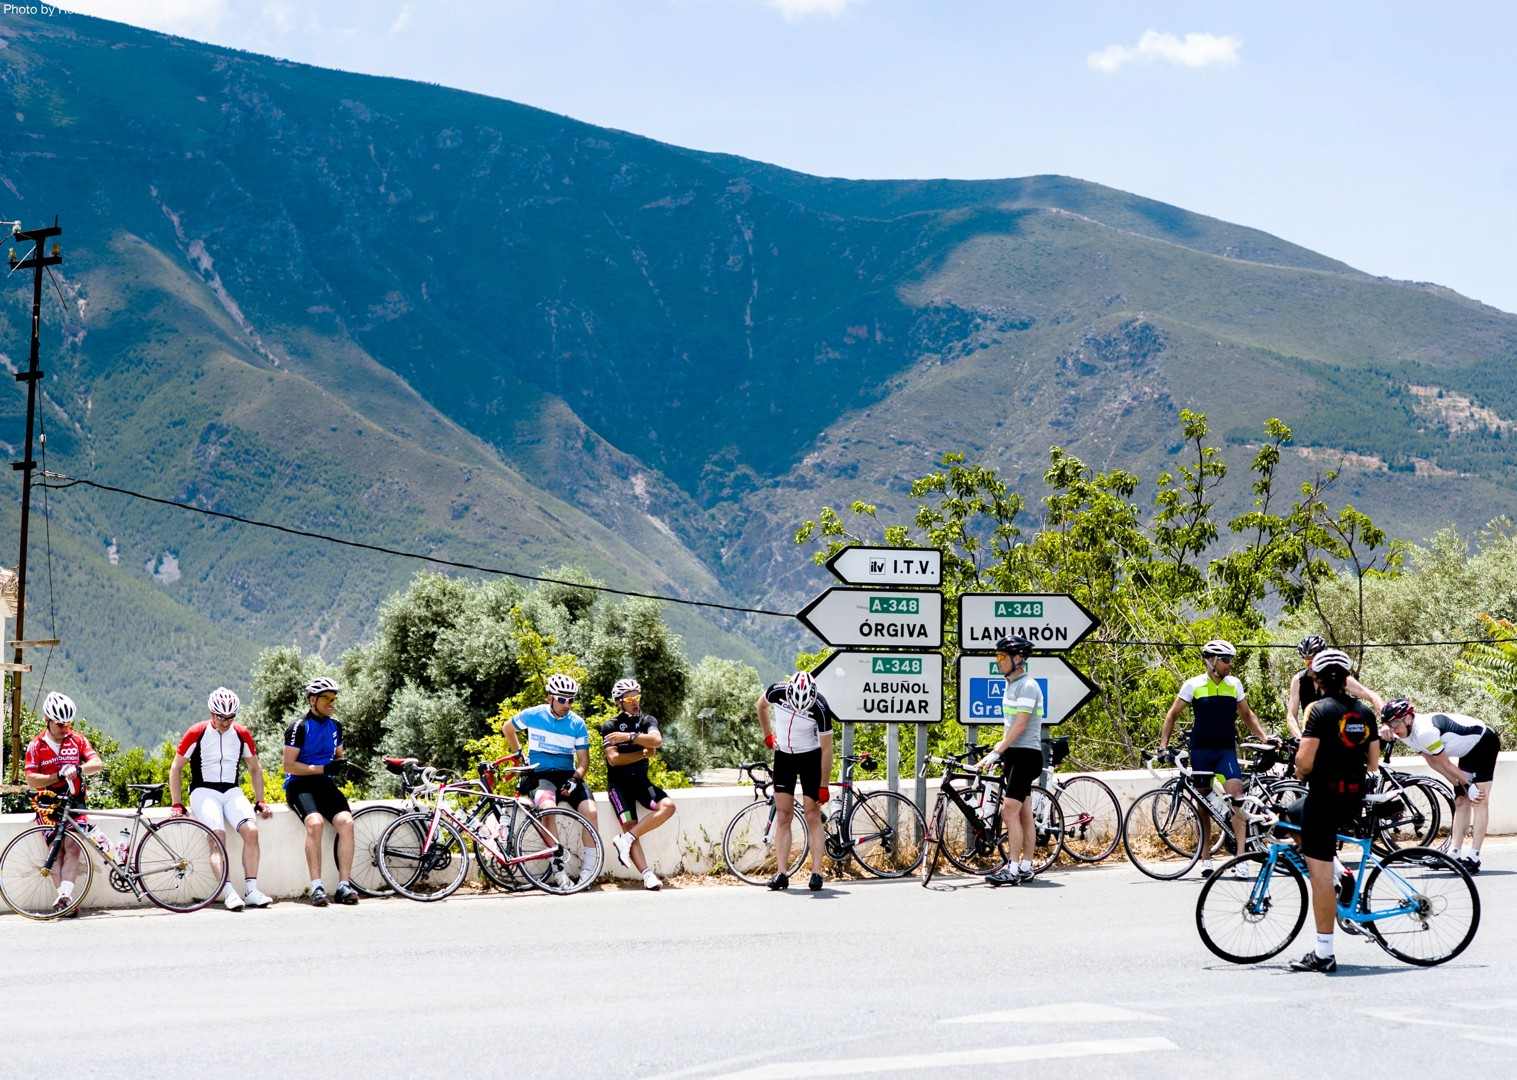 Guided-road-cycling-holiday-cape-to-cape-traverse-andalucia-spain-Grazalema.jpg - Southern Spain - Andalucia - Cape to Cape Traverse - Guided Road Cycling Holiday - Road Cycling